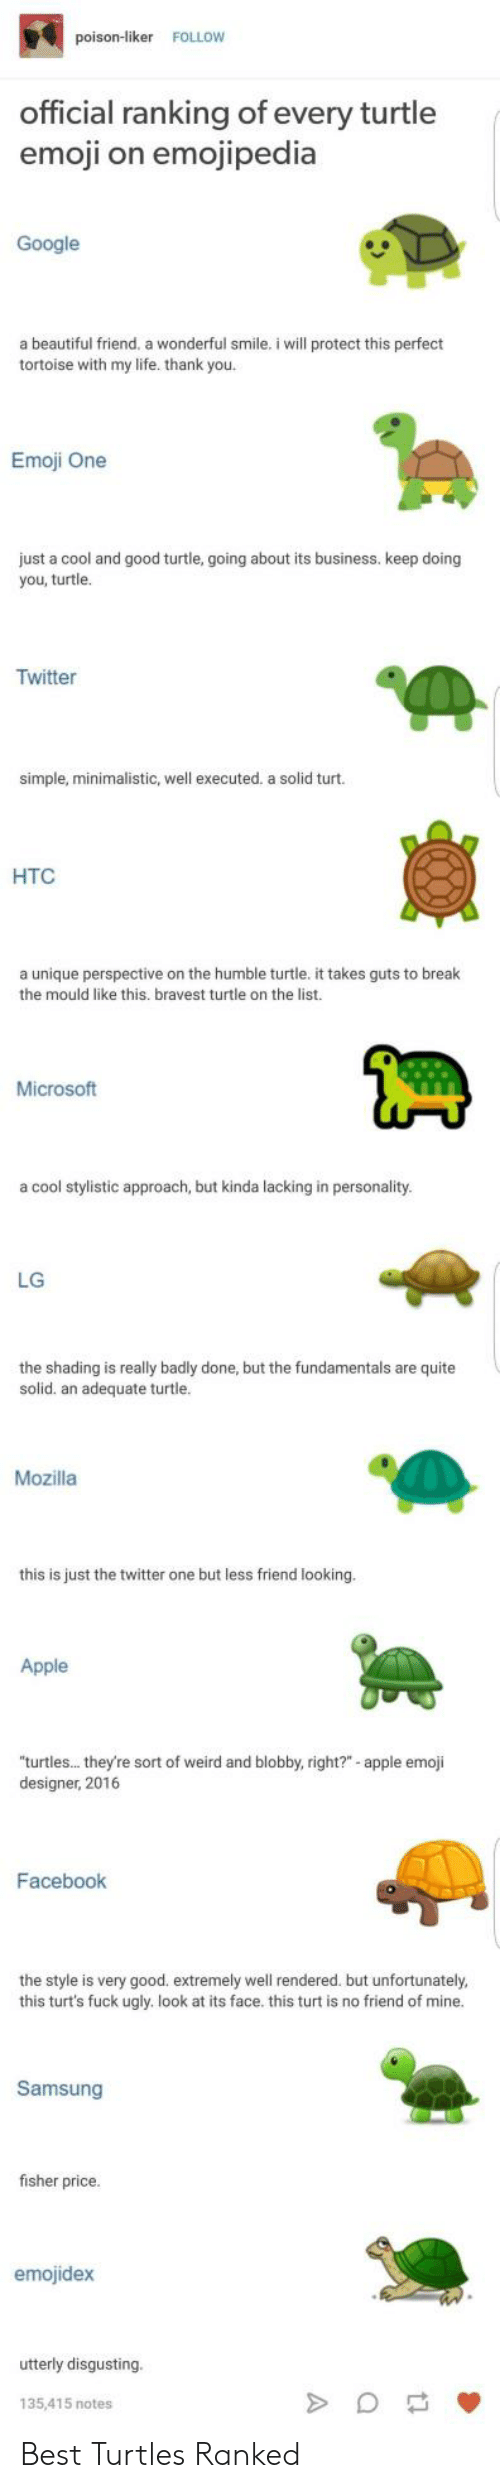 "Apple, Beautiful, and Emoji: poison-liker FOLLOW  official ranking of every turtle  emoji on emojipedia  Google  a beautiful friend, a wonderful smile. i will protect this perfect  tortoise with my life. thank you.  Emoji One  just a cool and good turtle, going about its business. keep doing  you, turtle.  Twitter  simple, minimalistic, well executed. a solid turt.  HTC  a unique perspective on the humble turtle. it takes guts to break  the mould like this. bravest turtle on the list.  Microsoft  a cool stylistic approach, but kinda lacking in personality  LG  the shading is really badly done, but the fundamentals are quite  solid. an adequate turtle.  Mozilla  this is just the twitter one but less friend looking.  Apple  turtles... they're sort of weird and blobby, right?""- apple emoji  designer, 2016  Facebook  the style is very good. extremely well rendered. but unfortunately  this turt's fuck ugly. look at its face. this turt is no friend of mine  Samsung  fisher price  emojidex  utterly disgusting  135,415 notes Best Turtles Ranked"